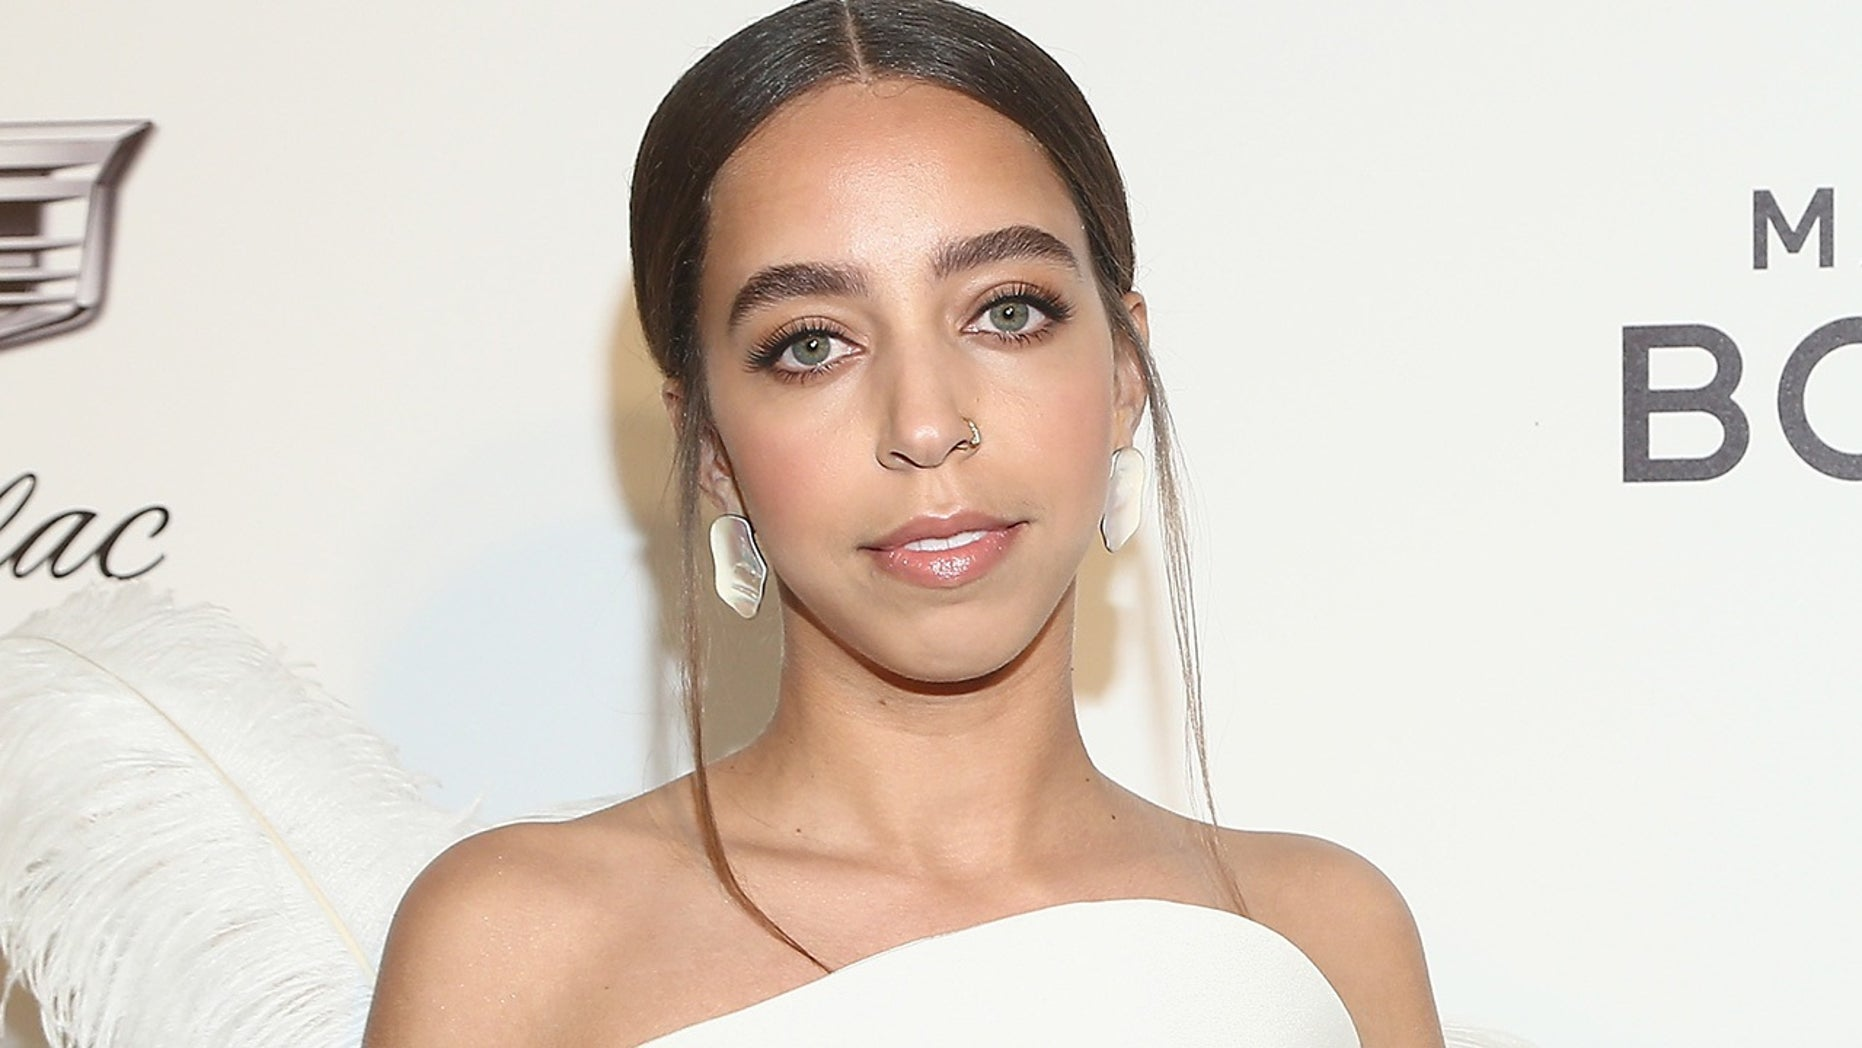 Actress Hayley Law attends IMDb LIVE At The Elton John AIDS Foundation Academy Awards® Viewing Party on February 24, 2019 in Los Angeles, California.